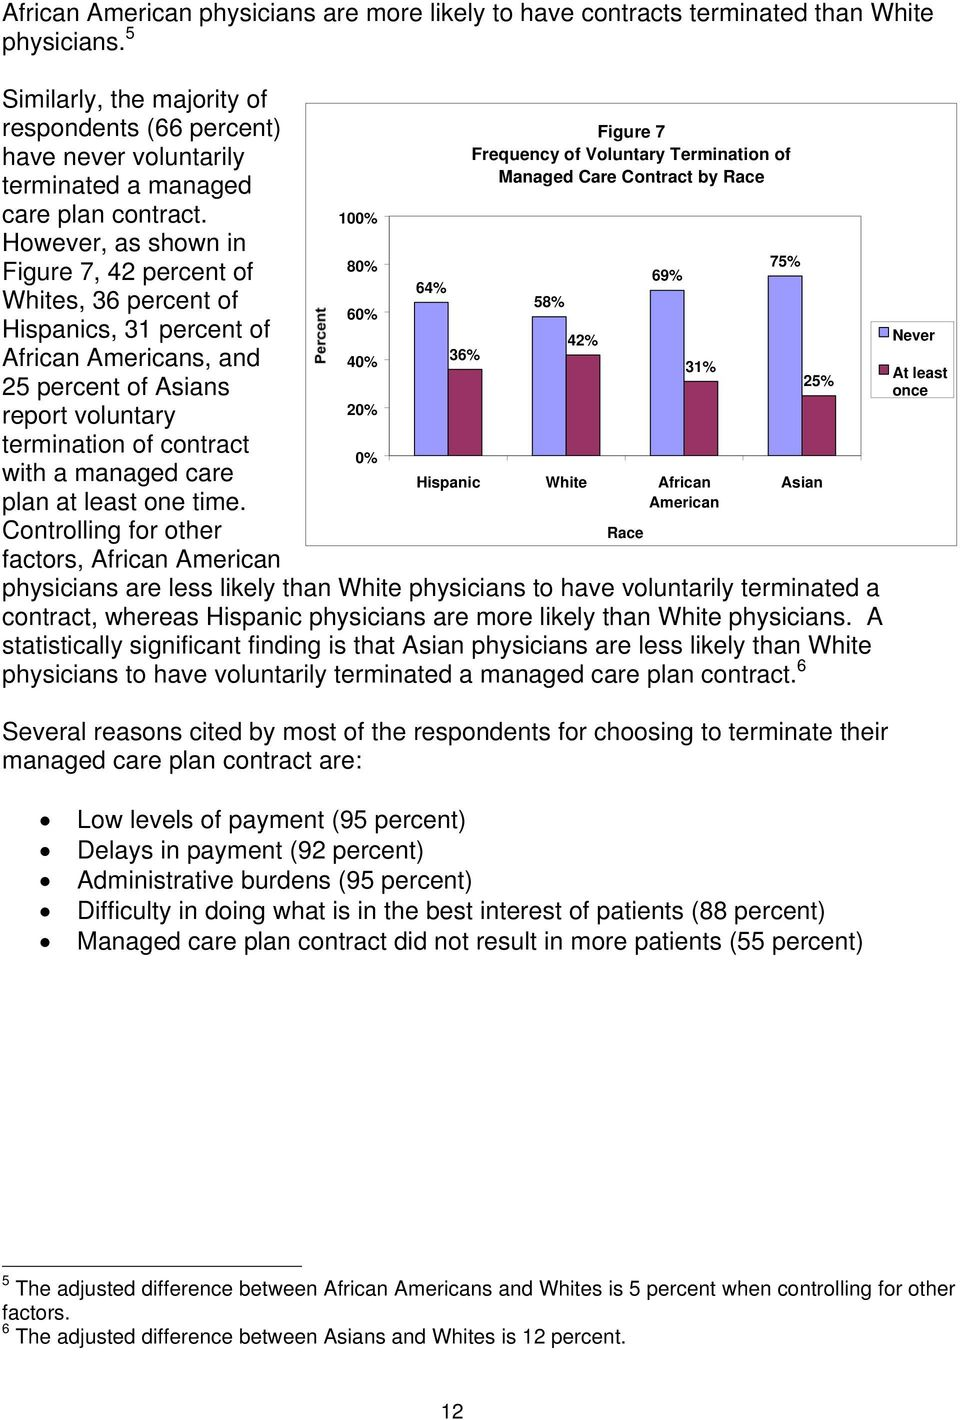 However, as shown in Figure 7, 42 percent of Whites, 36 percent of Hispanics, 31 percent of African Americans, and 25 percent of Asians report voluntary termination of contract with a managed care